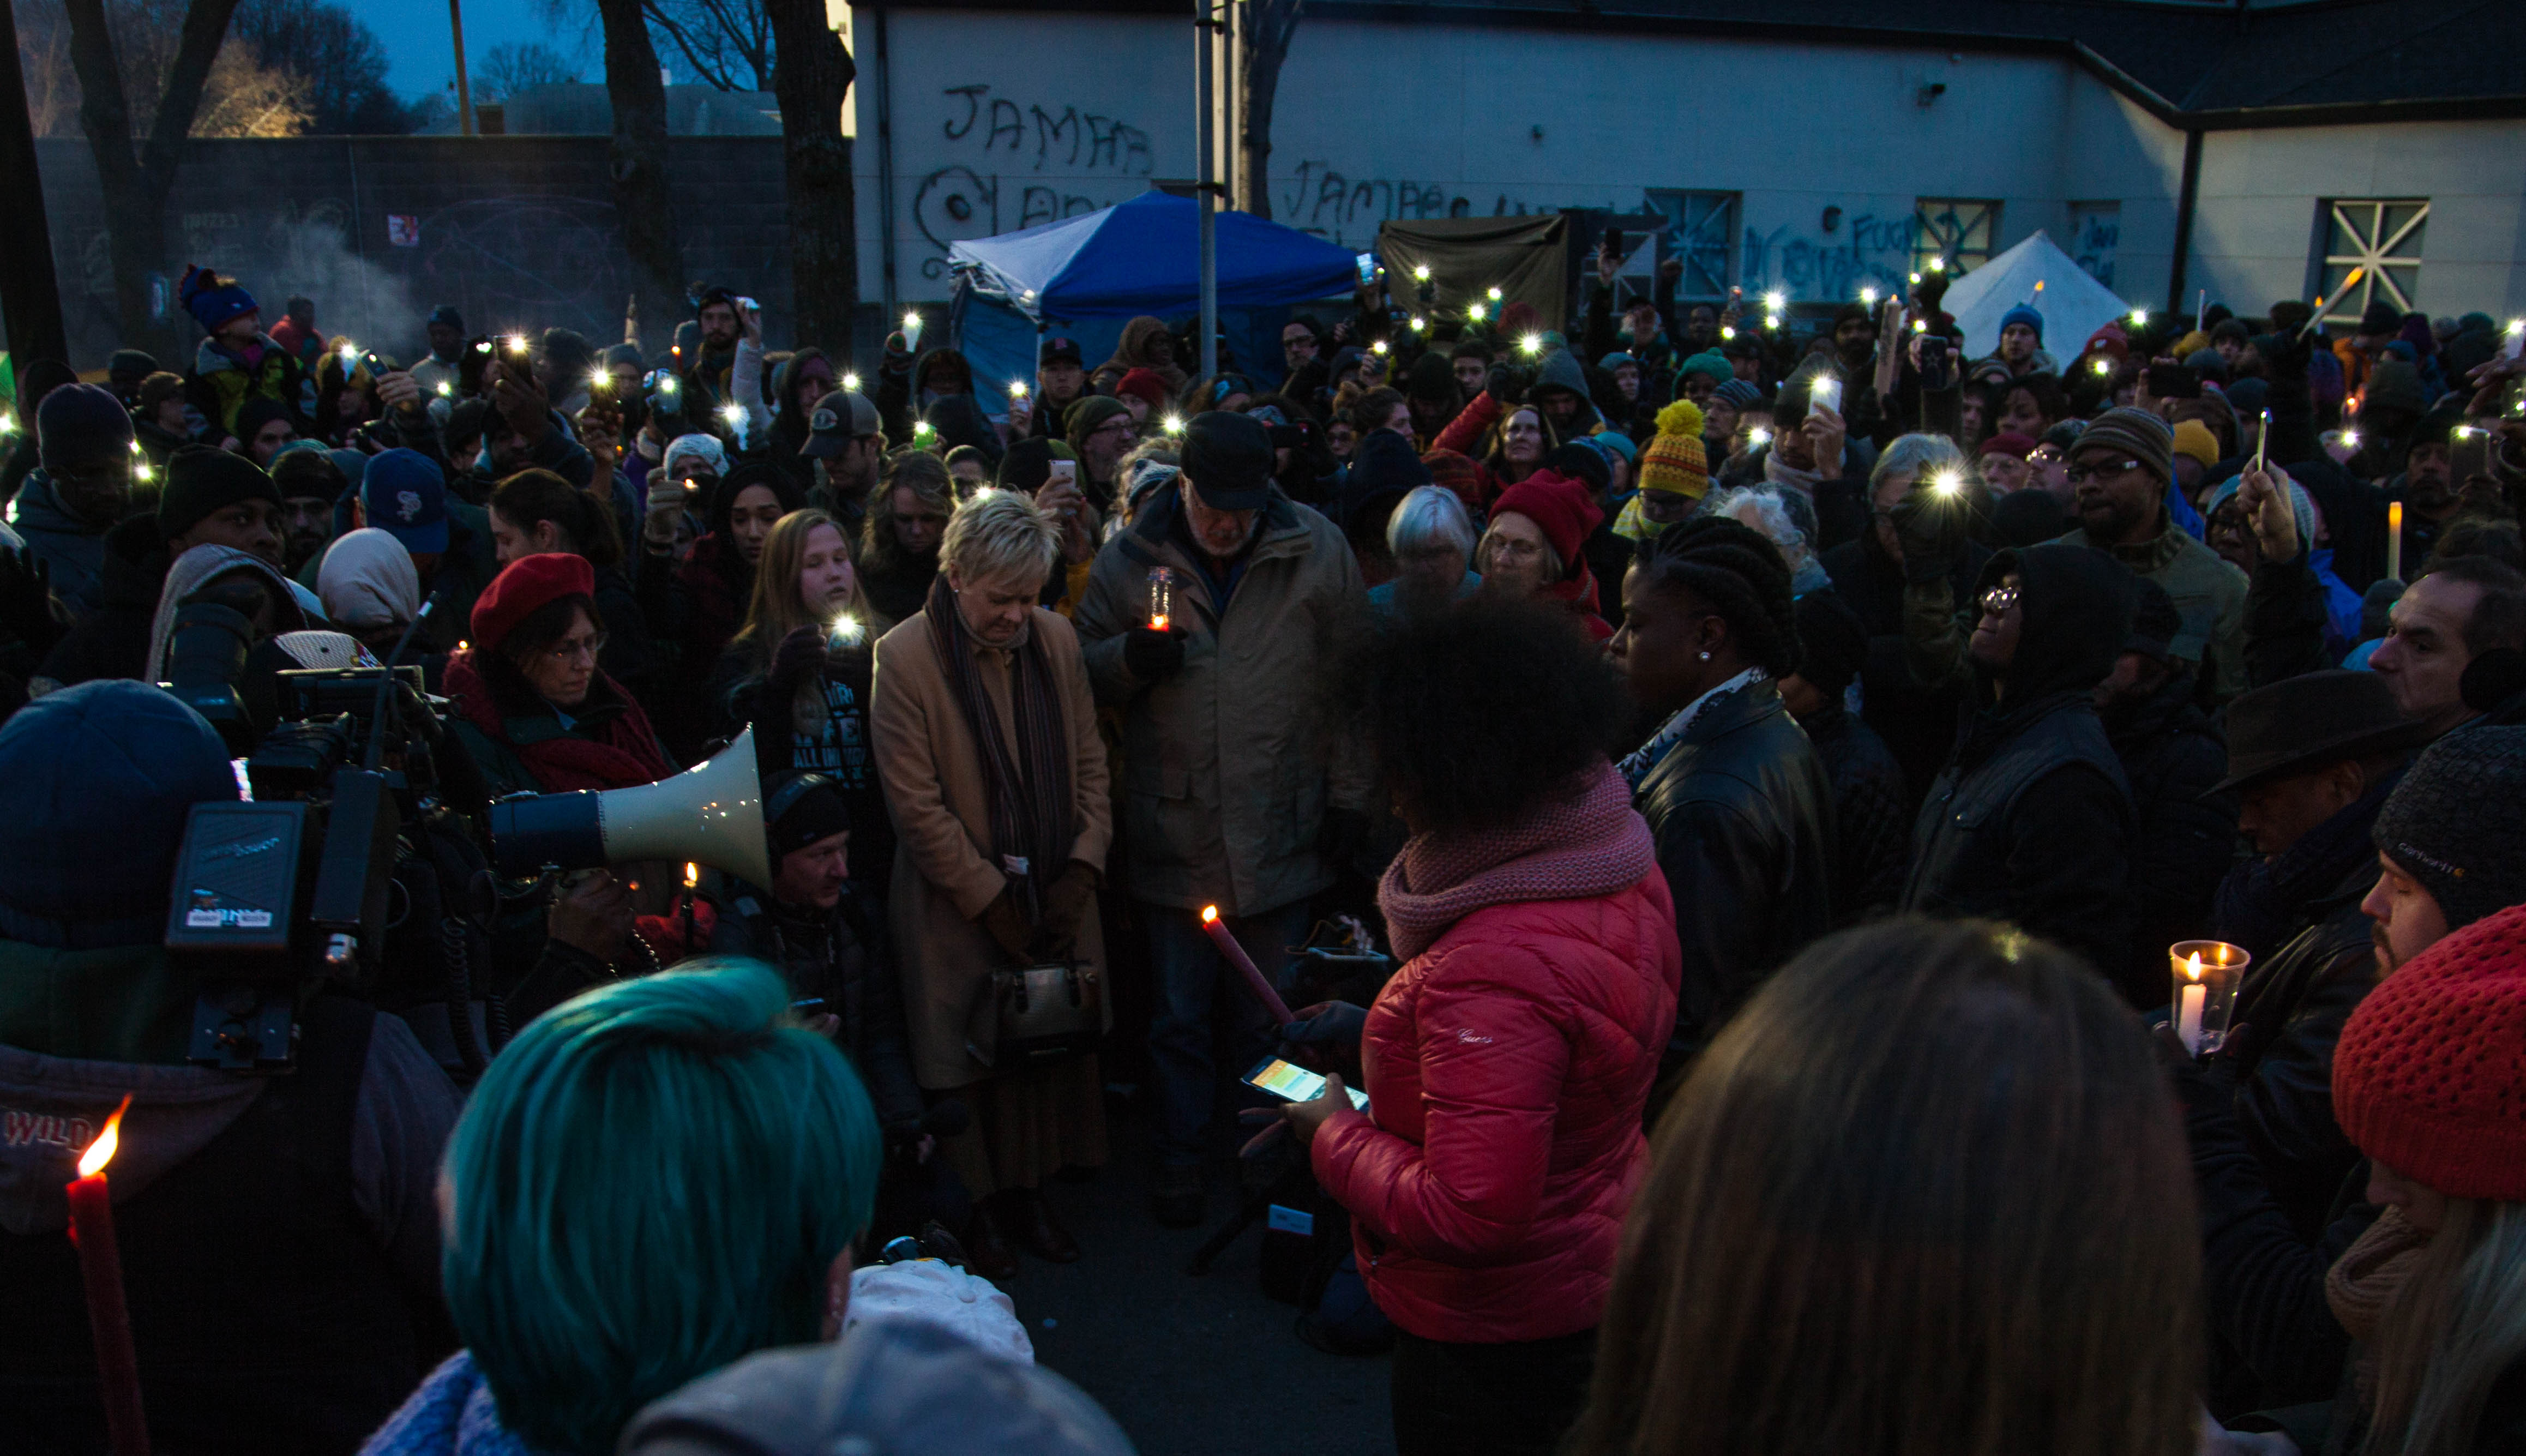 A large group of folks gathered at a candlelight vigil for Jamar Clark. It is night-time, and people have solemnly have their heads down.